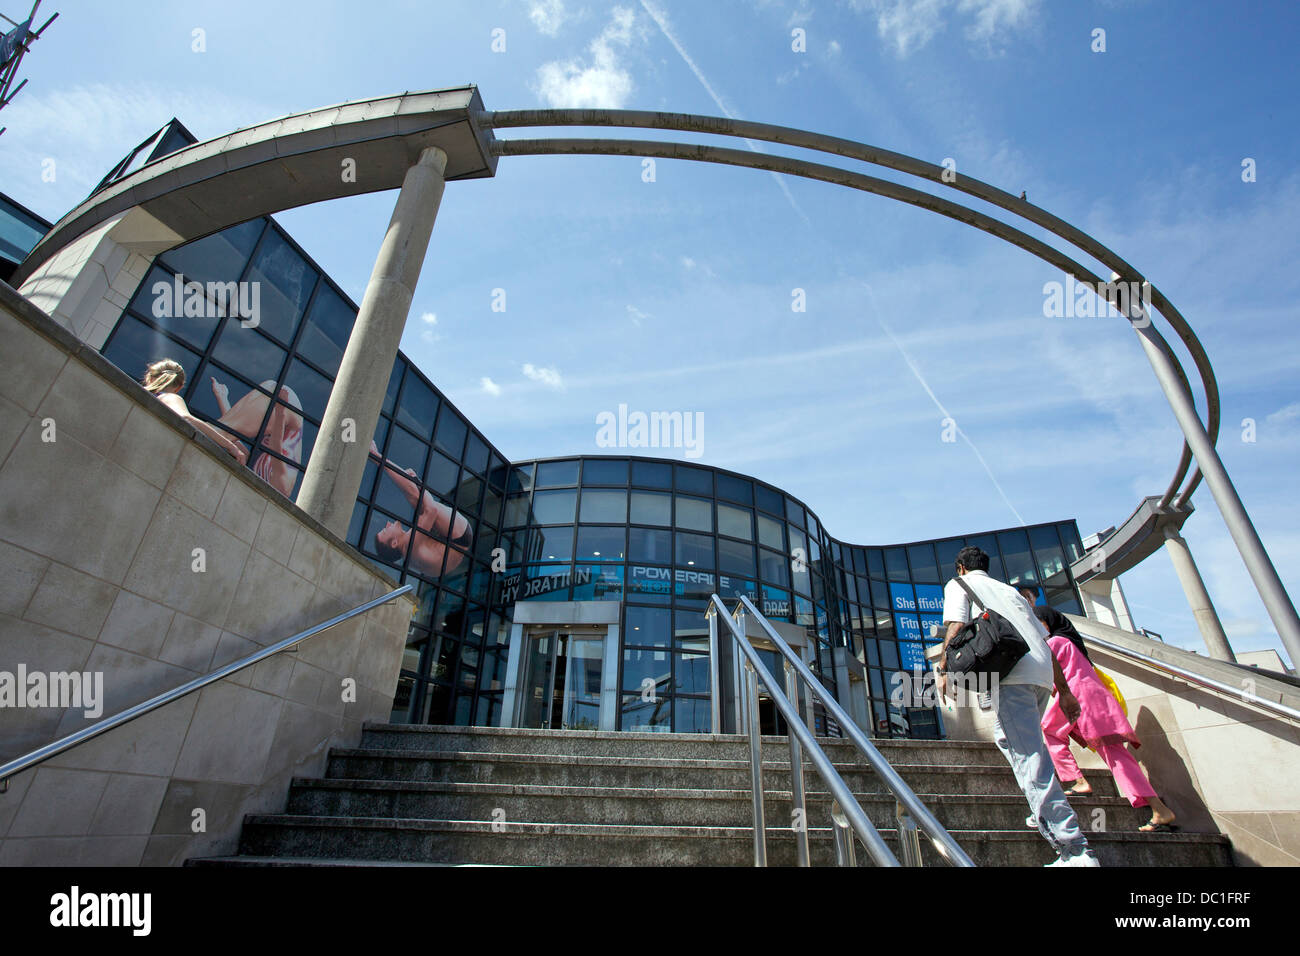 Ponds Forge Sheffield - Stock Image